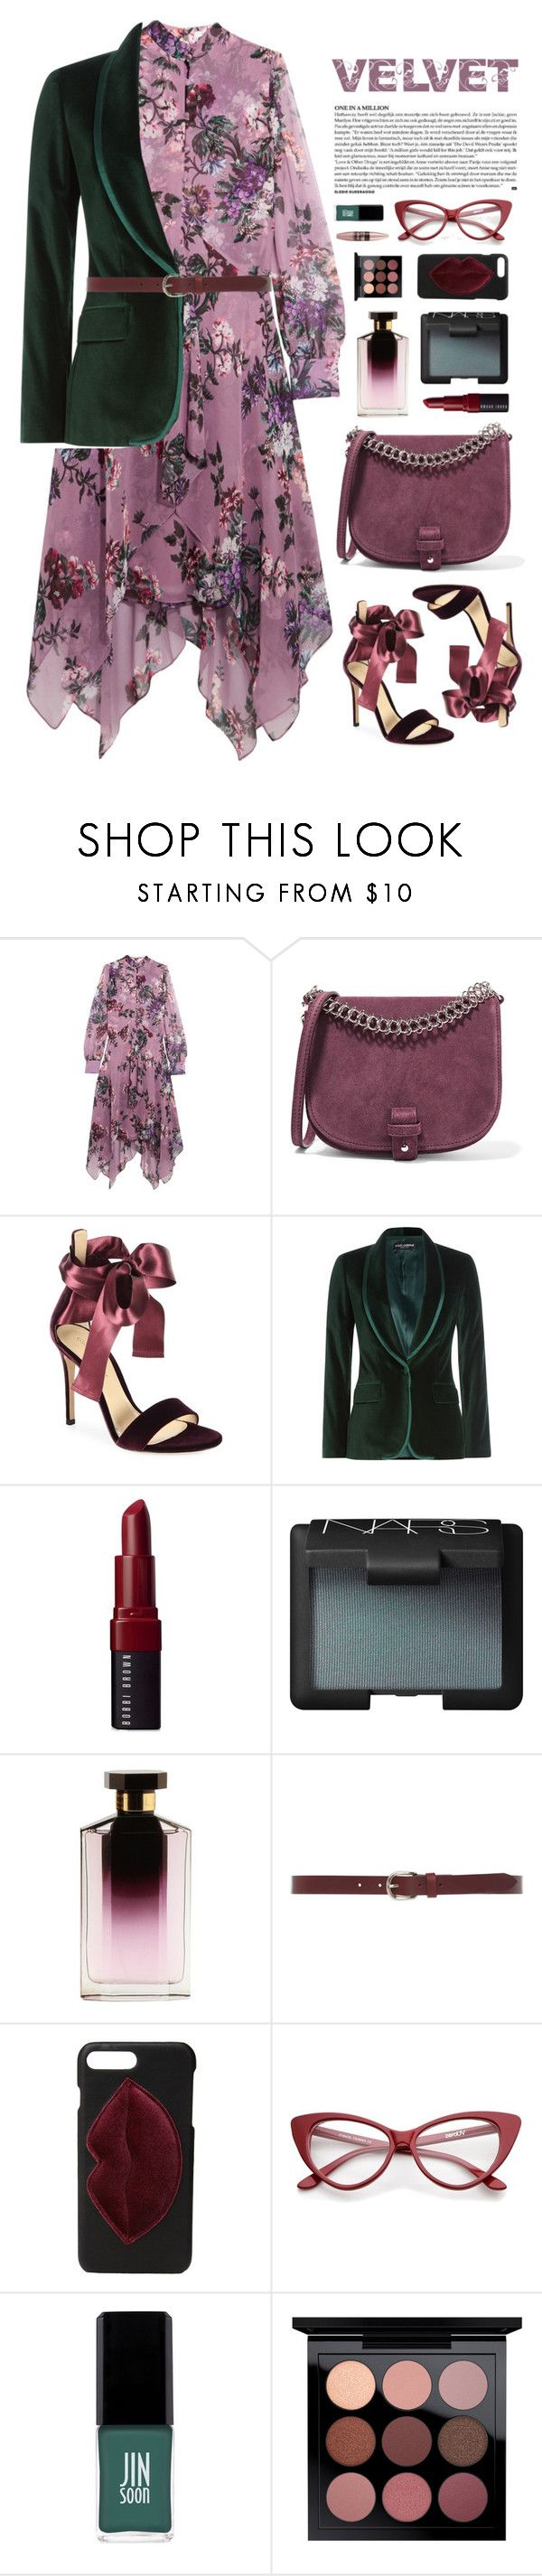 """""""Velvet Darling"""" by cara-mia-mon-cher ❤ liked on Polyvore featuring Erdem, Little Liffner, Gianvito Rossi, Dolce&Gabbana, Bobbi Brown Cosmetics, NARS Cosmetics, STELLA McCARTNEY, Isabel Marant, Kendall + Kylie and Jin Soon"""